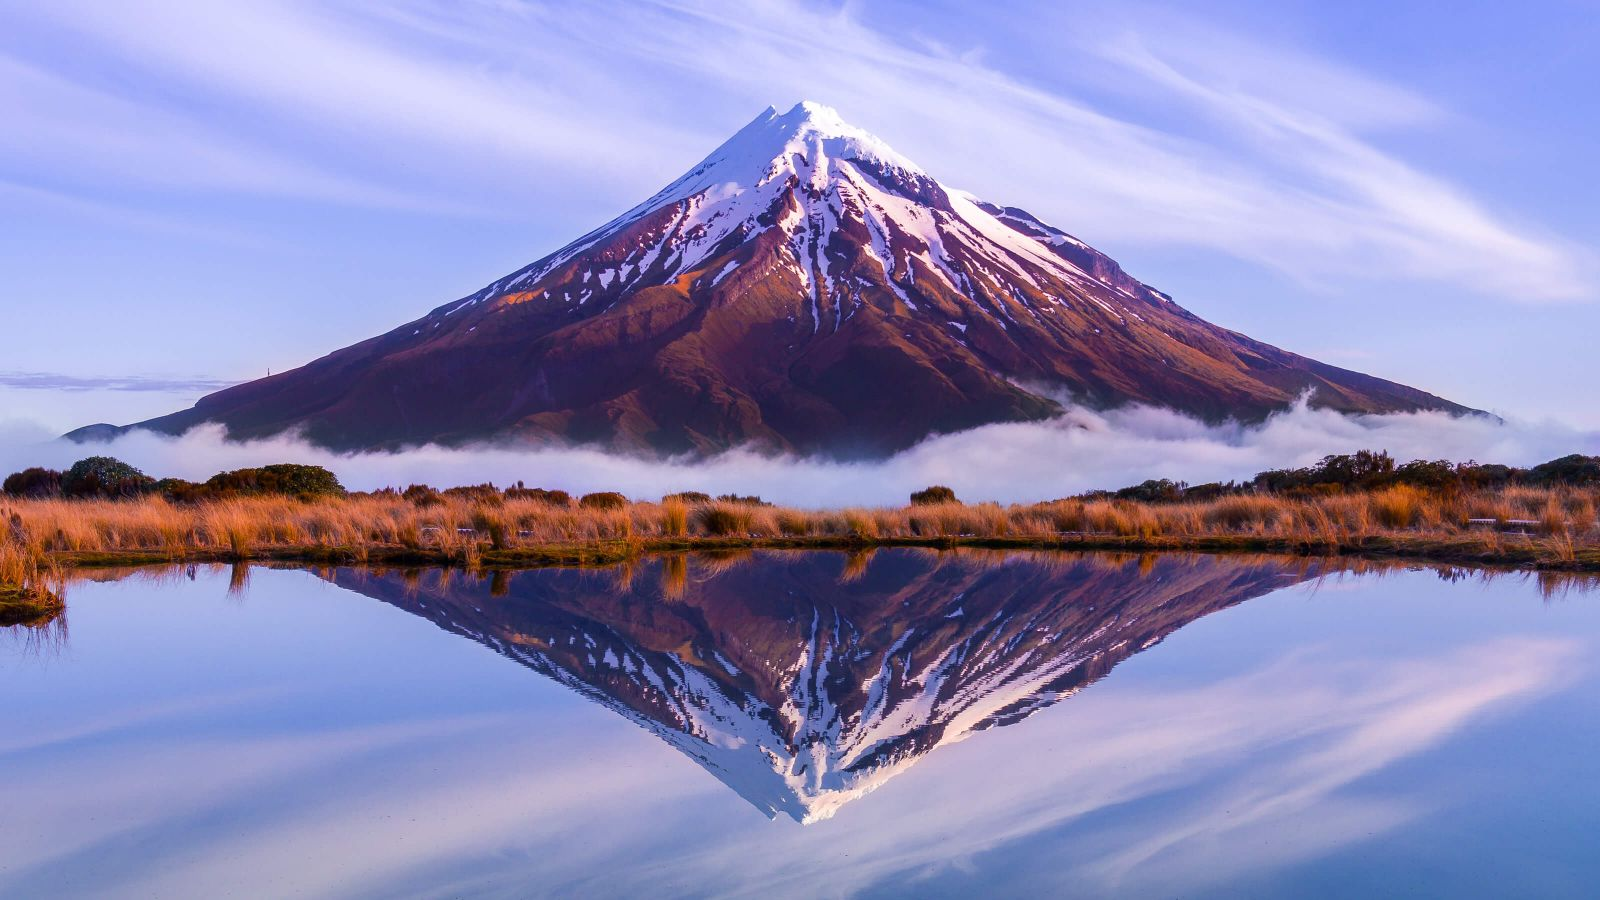 The symmetrical Mount Taranaki with its single, snowy peak extending into a soft violet sky wisped with white clouds. The entire monumental scene is perfectly reflected in the mirror of the lake separated from the mountain's base by hot orange bush and a strip of low-lying cloud.